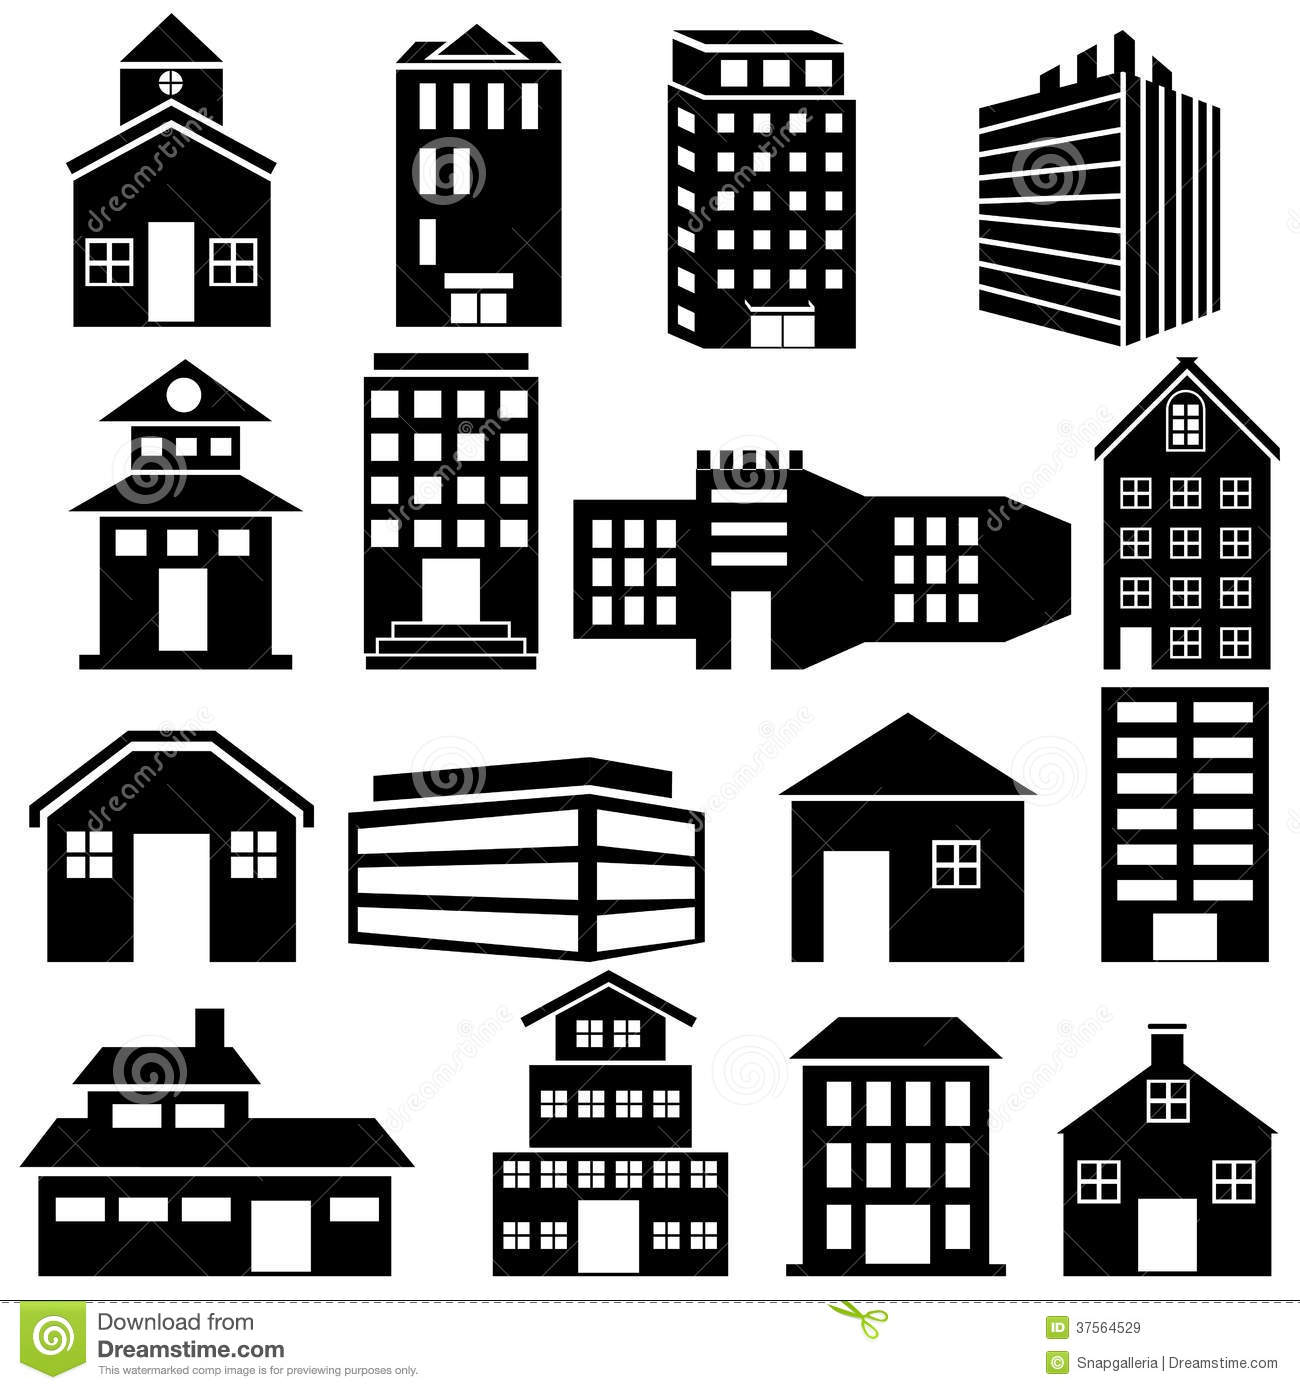 Business Office Floor Plans Building And Skyscraper Icon Royalty Free Stock Images